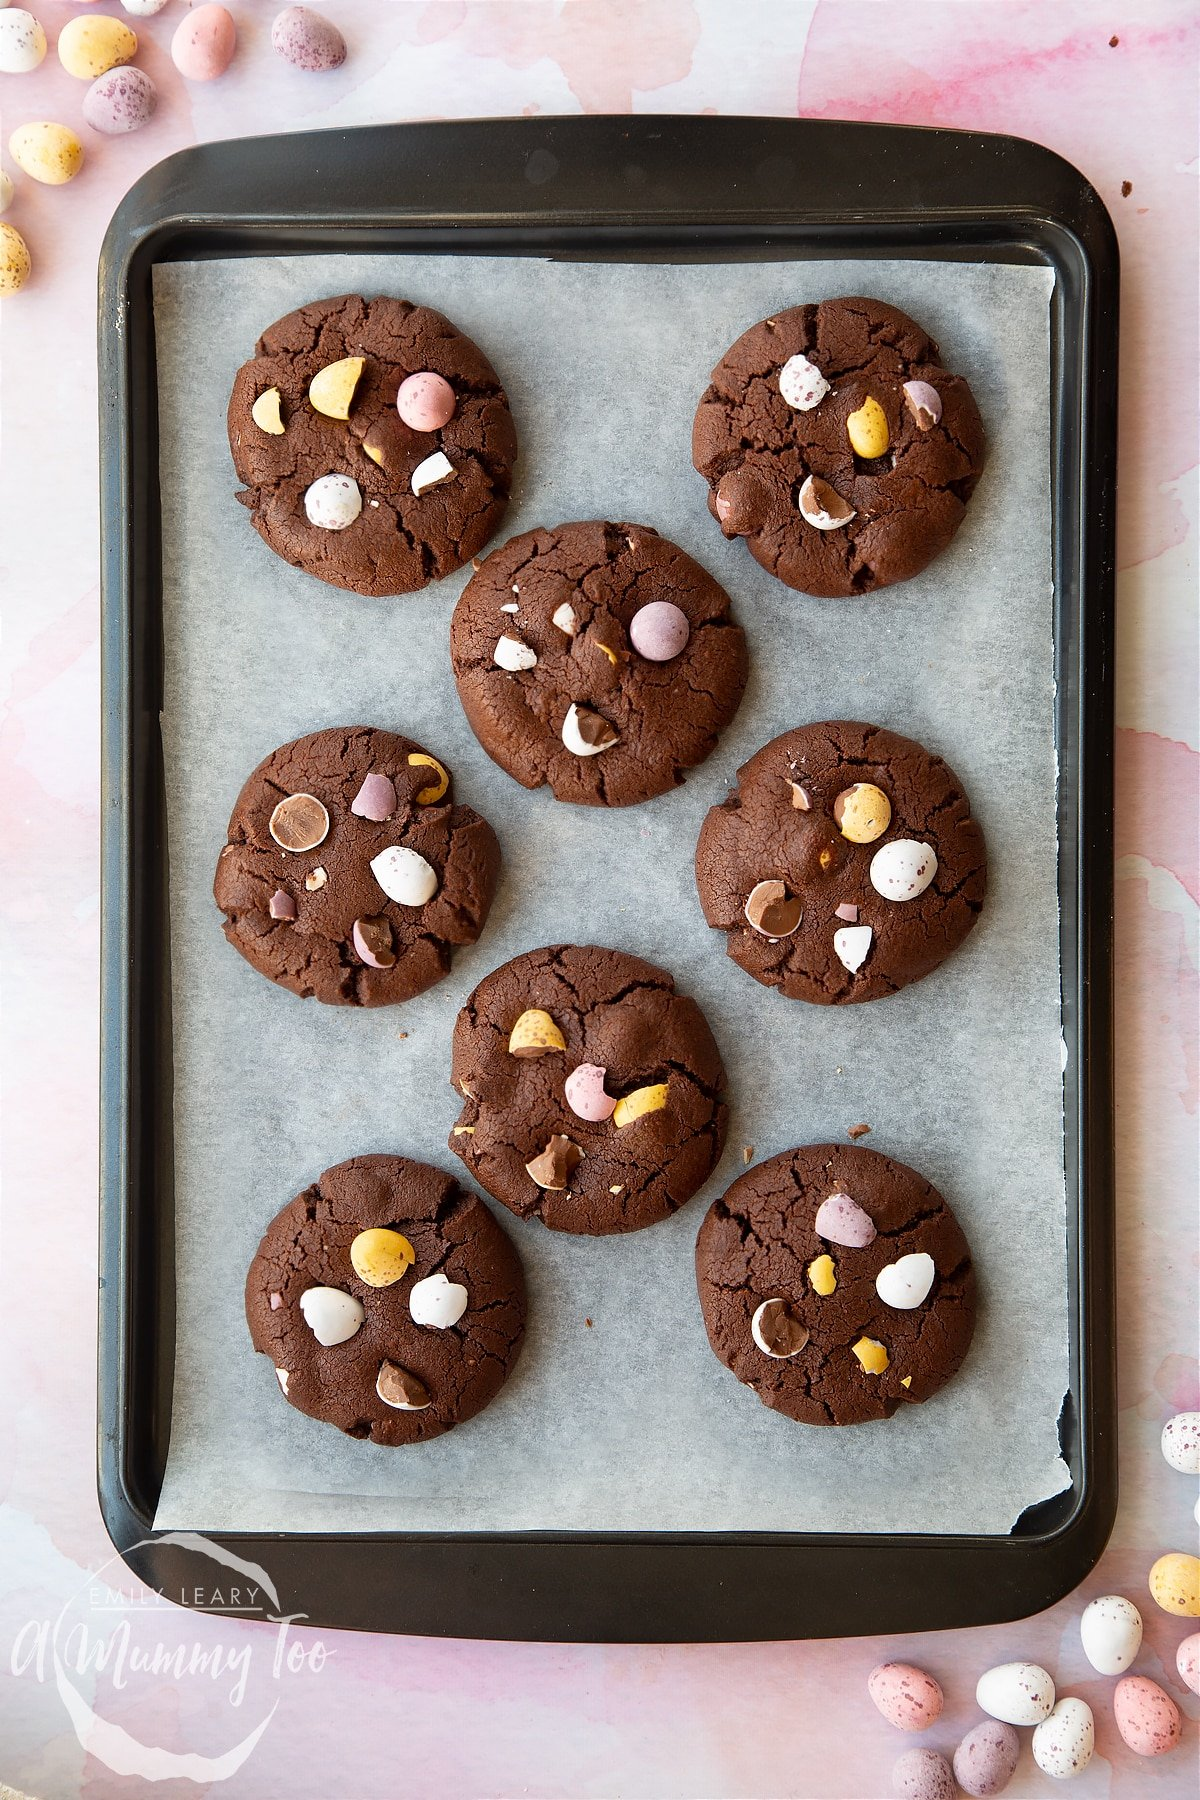 Chocolate Easter cookies arranged on a baking tray. The cookies are chocolate brown and topped with Mini Eggs.